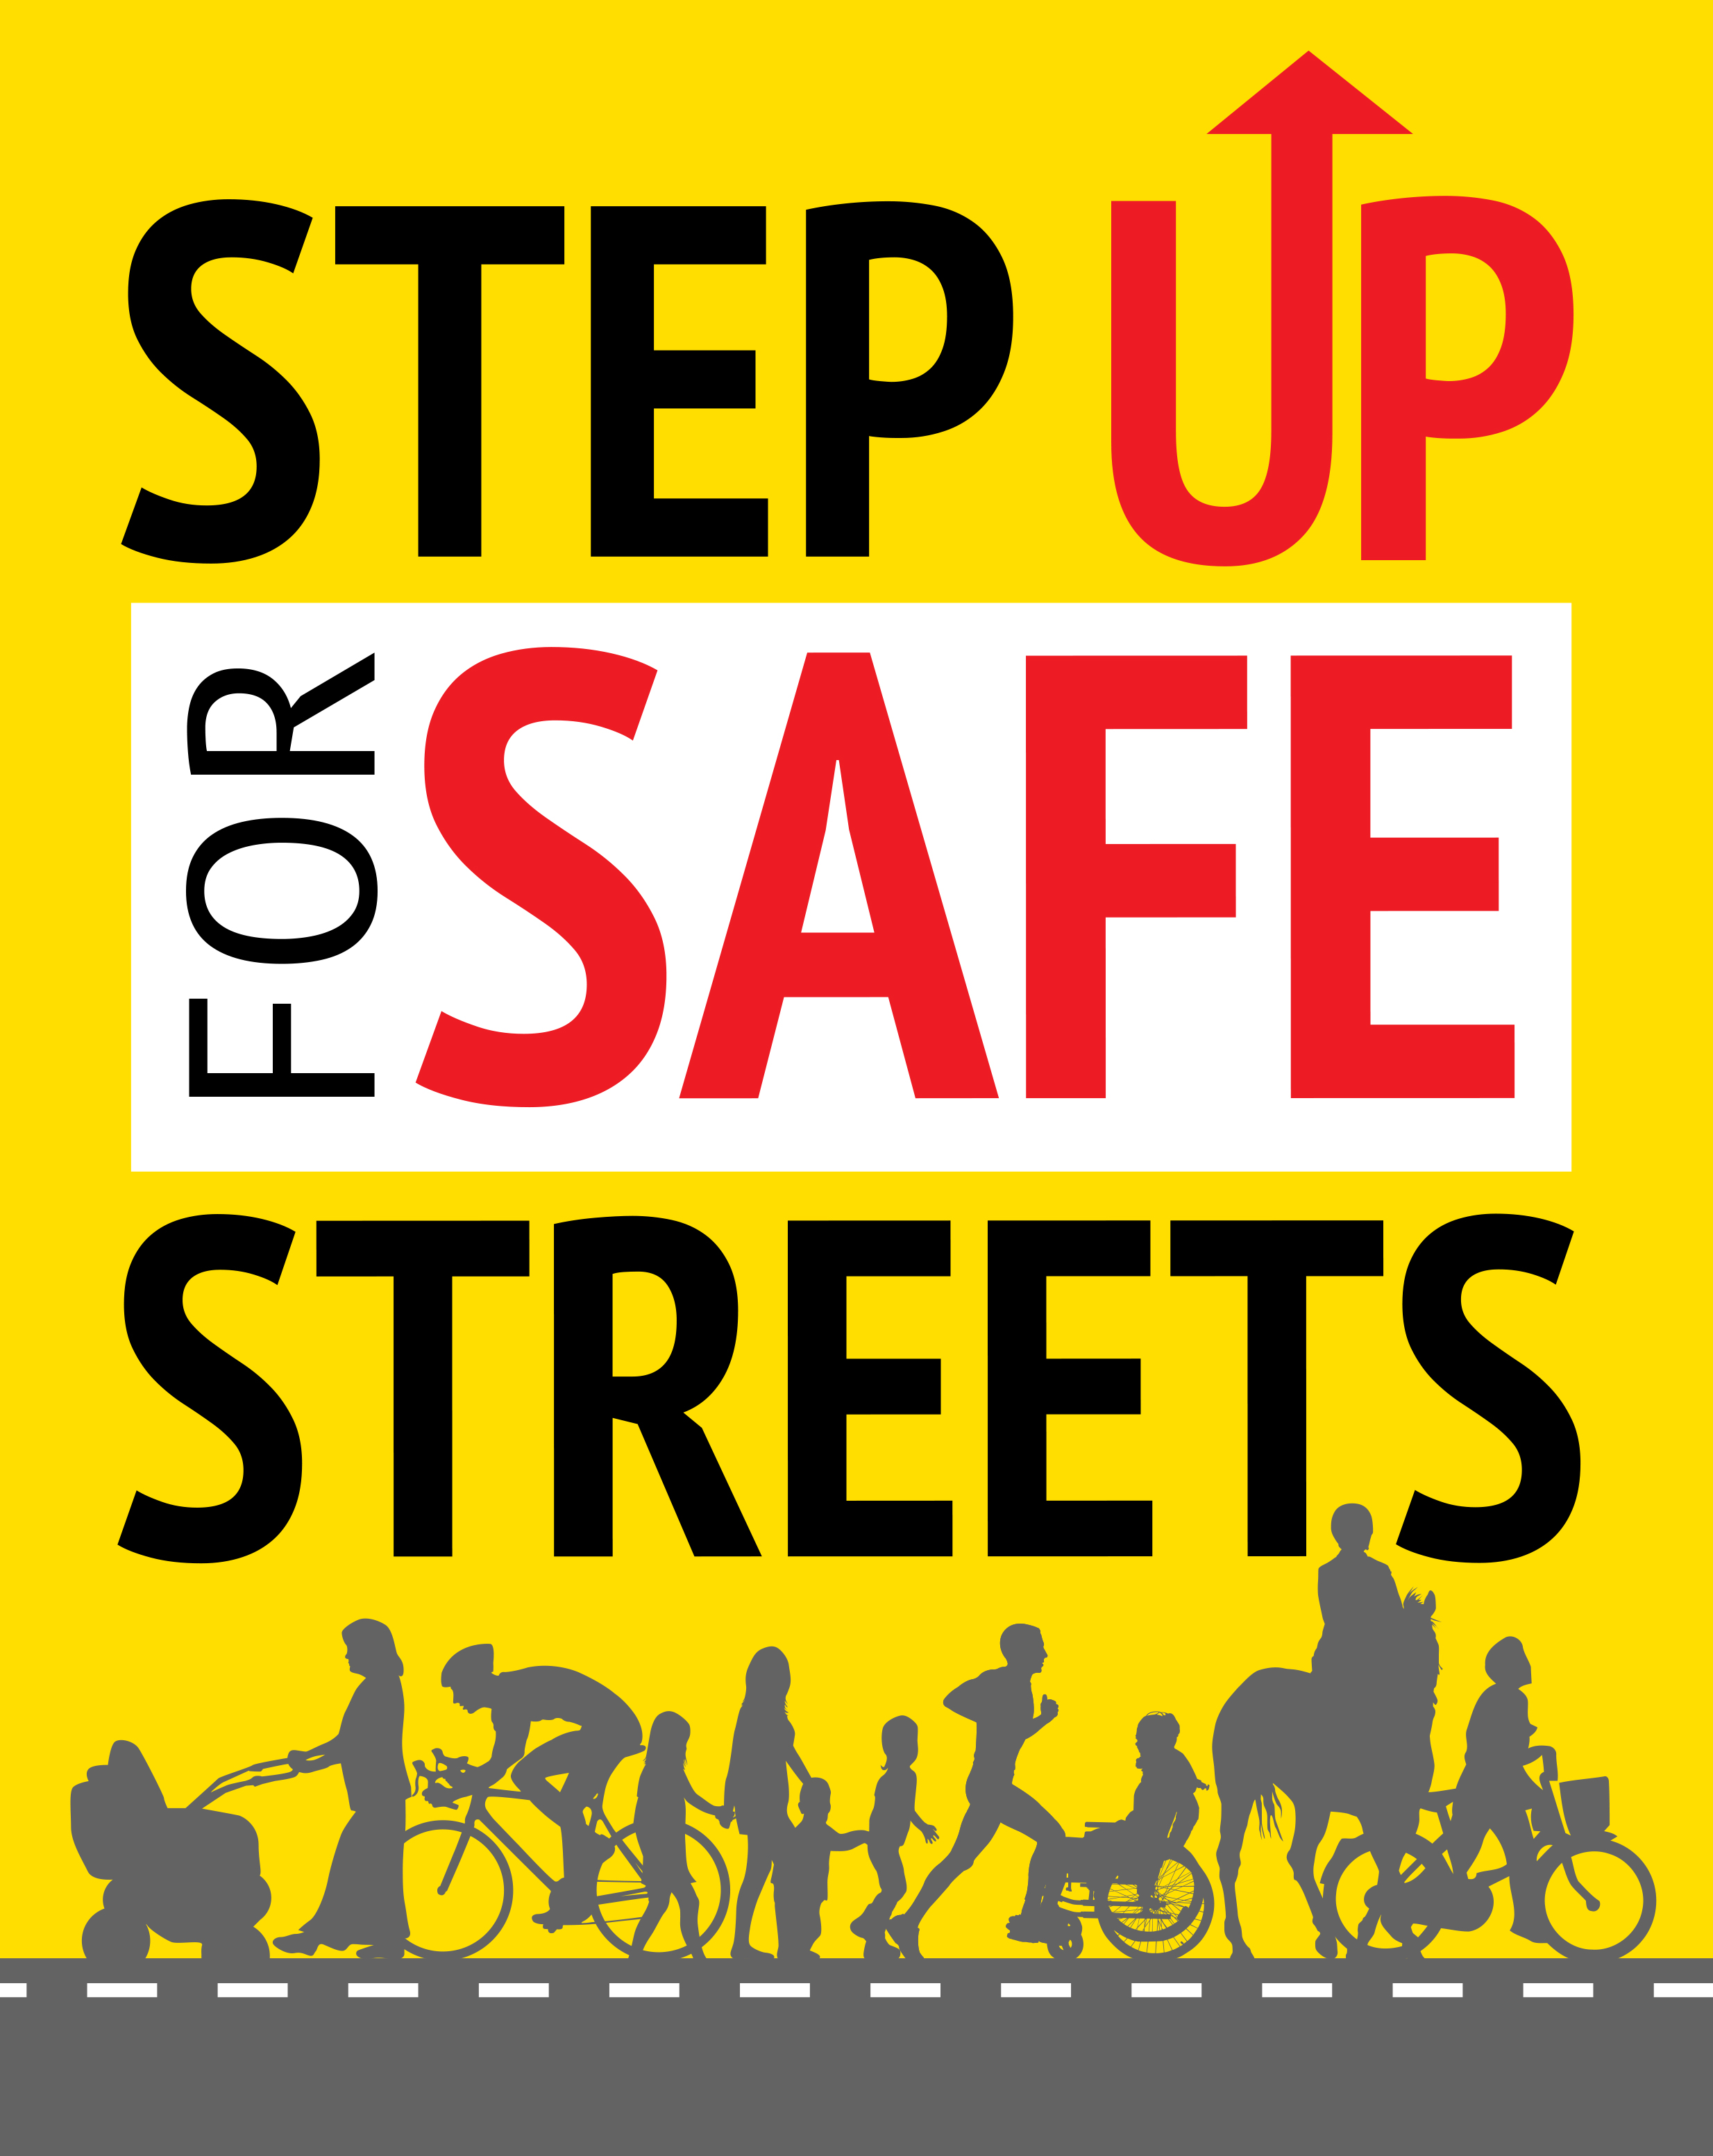 Pendle Community Safety Partnership urges drivers to Step up for safe streets